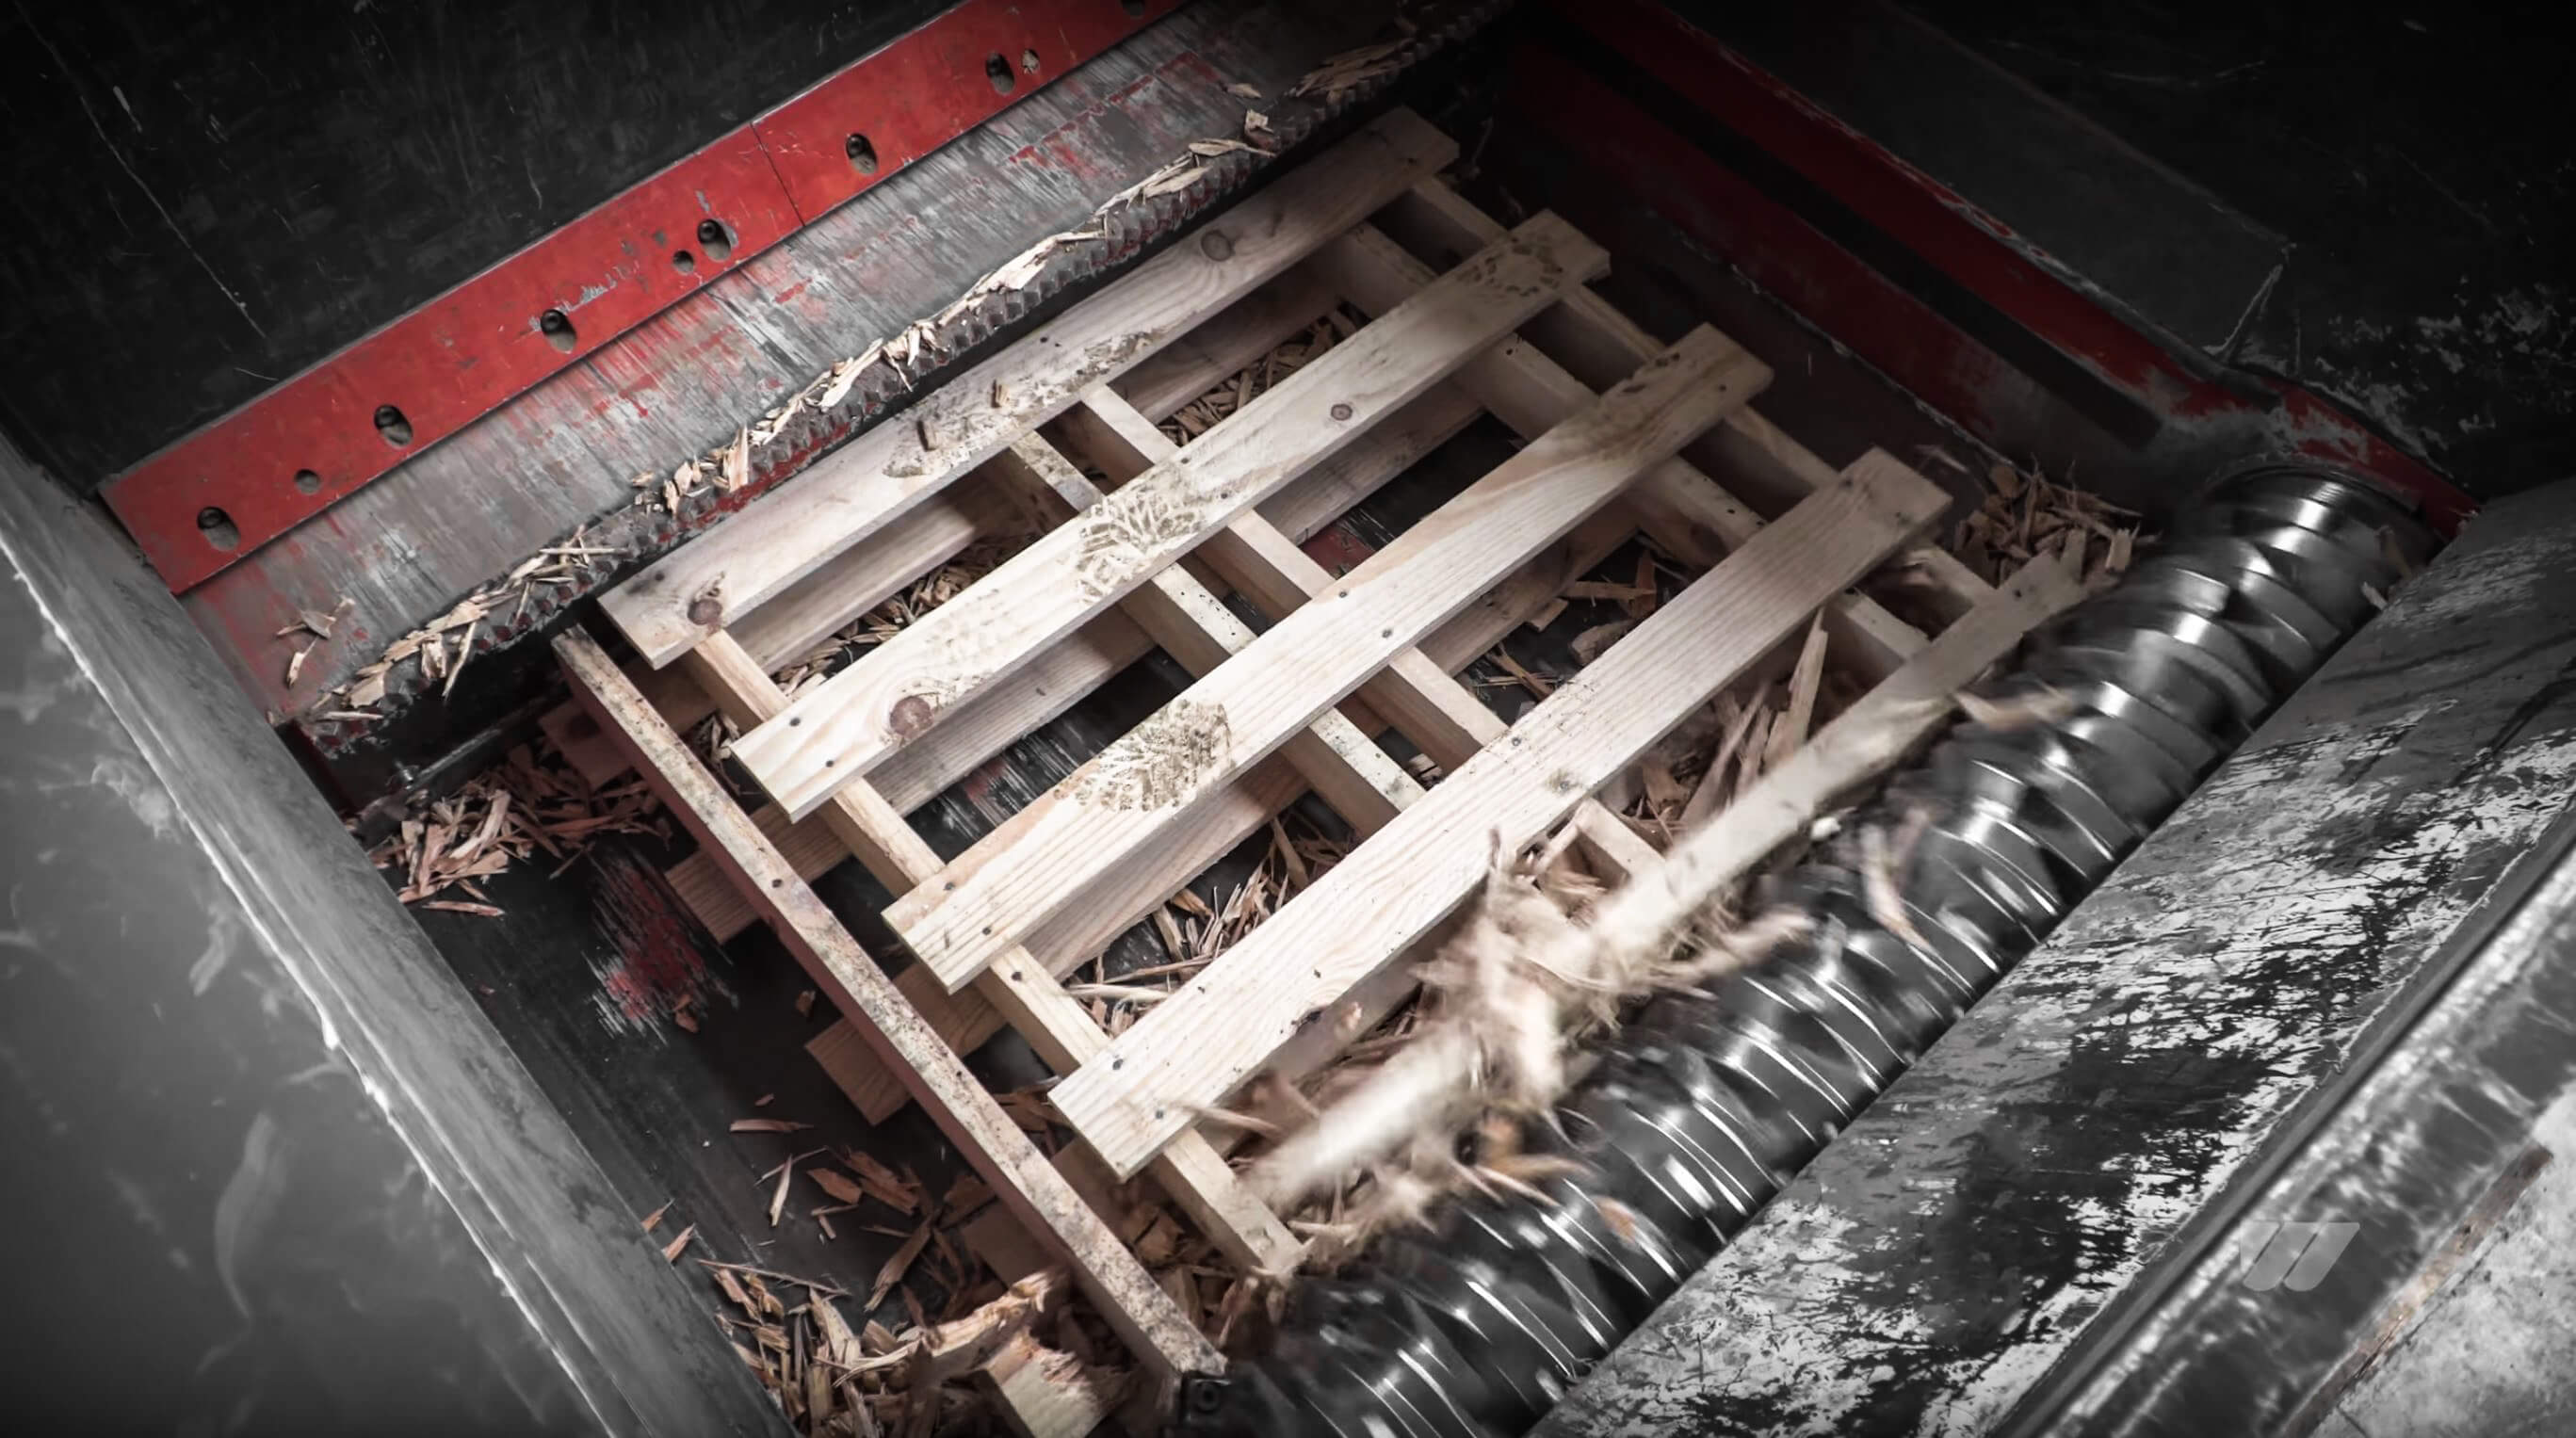 Shredding of pallets in the cutting chamber of a WLK 1500 shredder